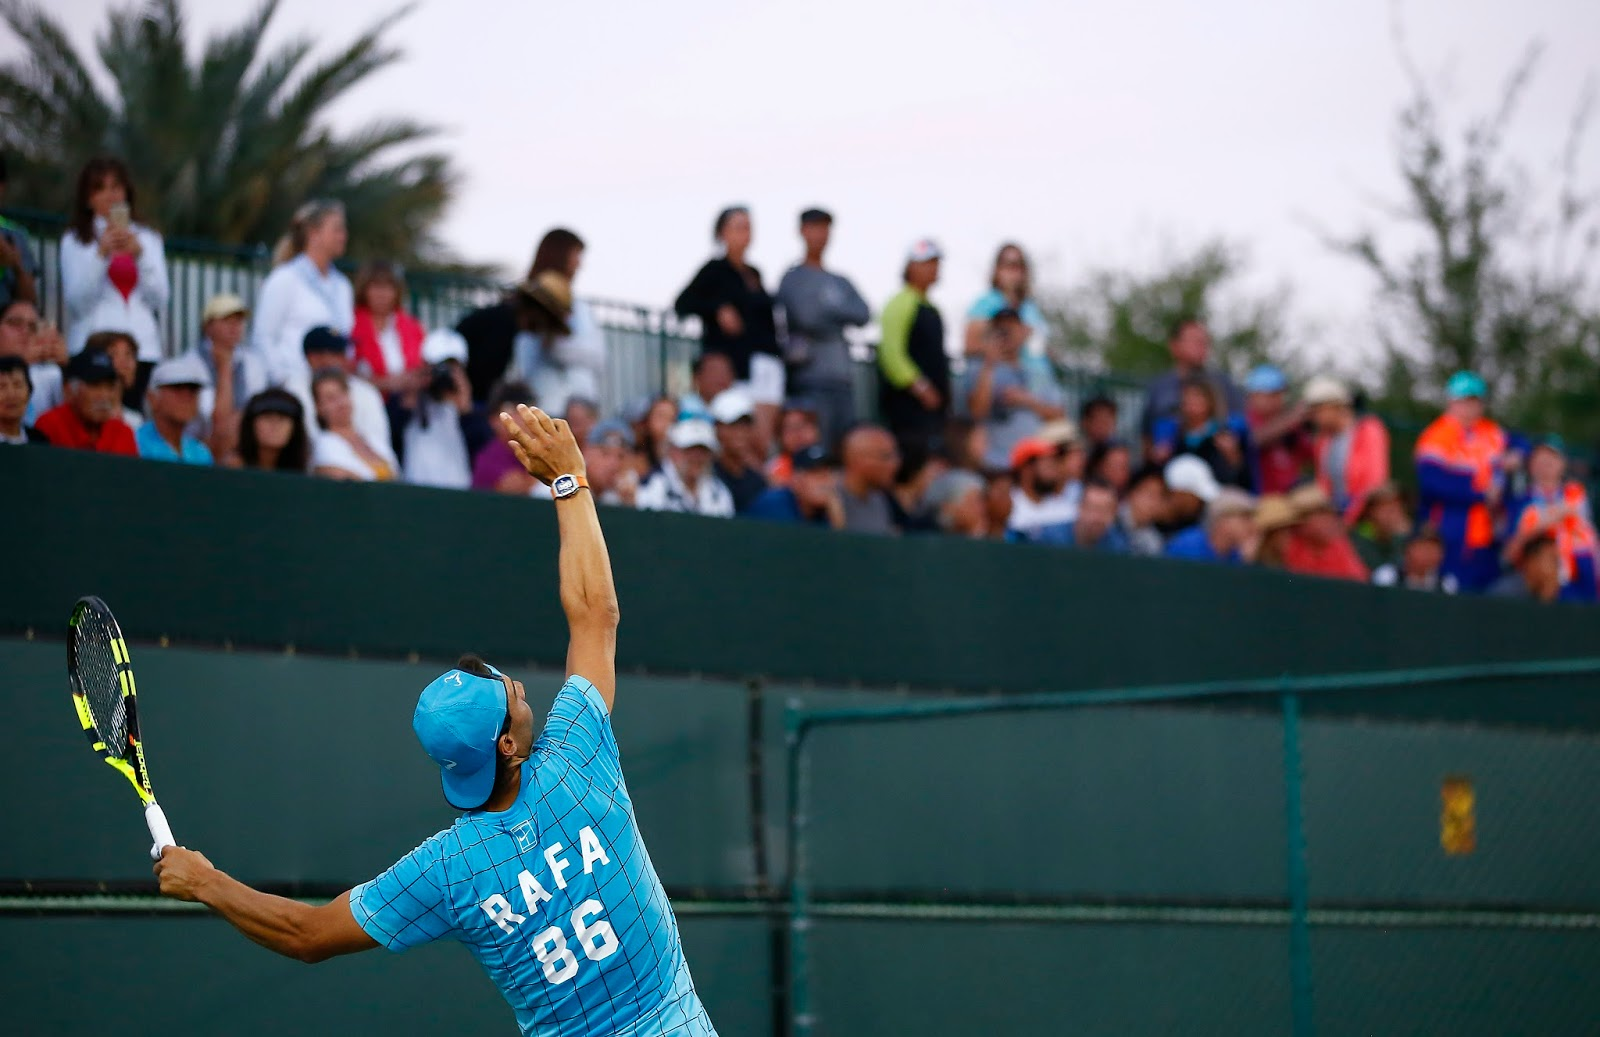 Jared Wickerham/BNP Paribas Open